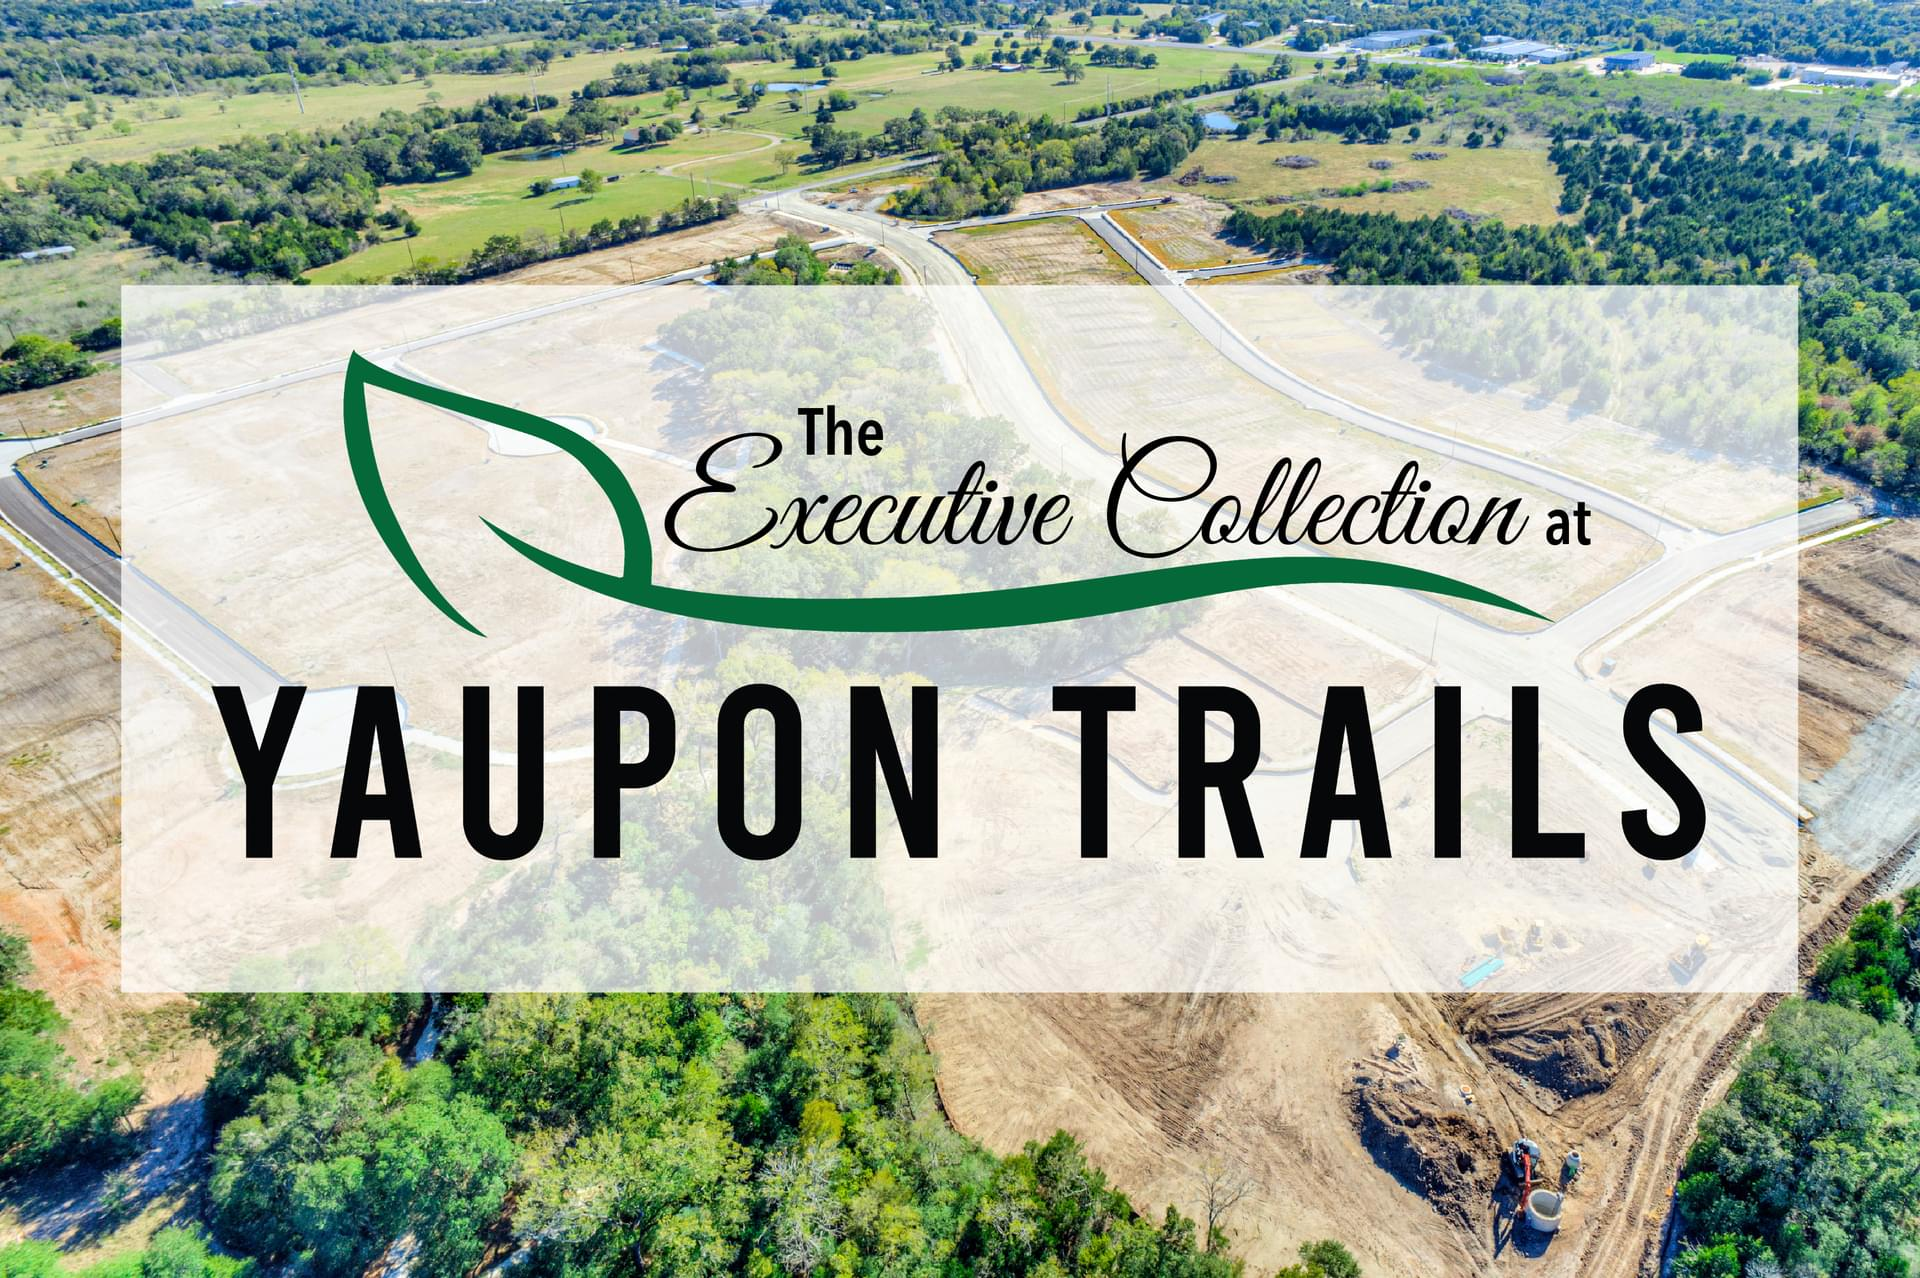 The Executive Collection at Yaupon Trails in Bryan, TX